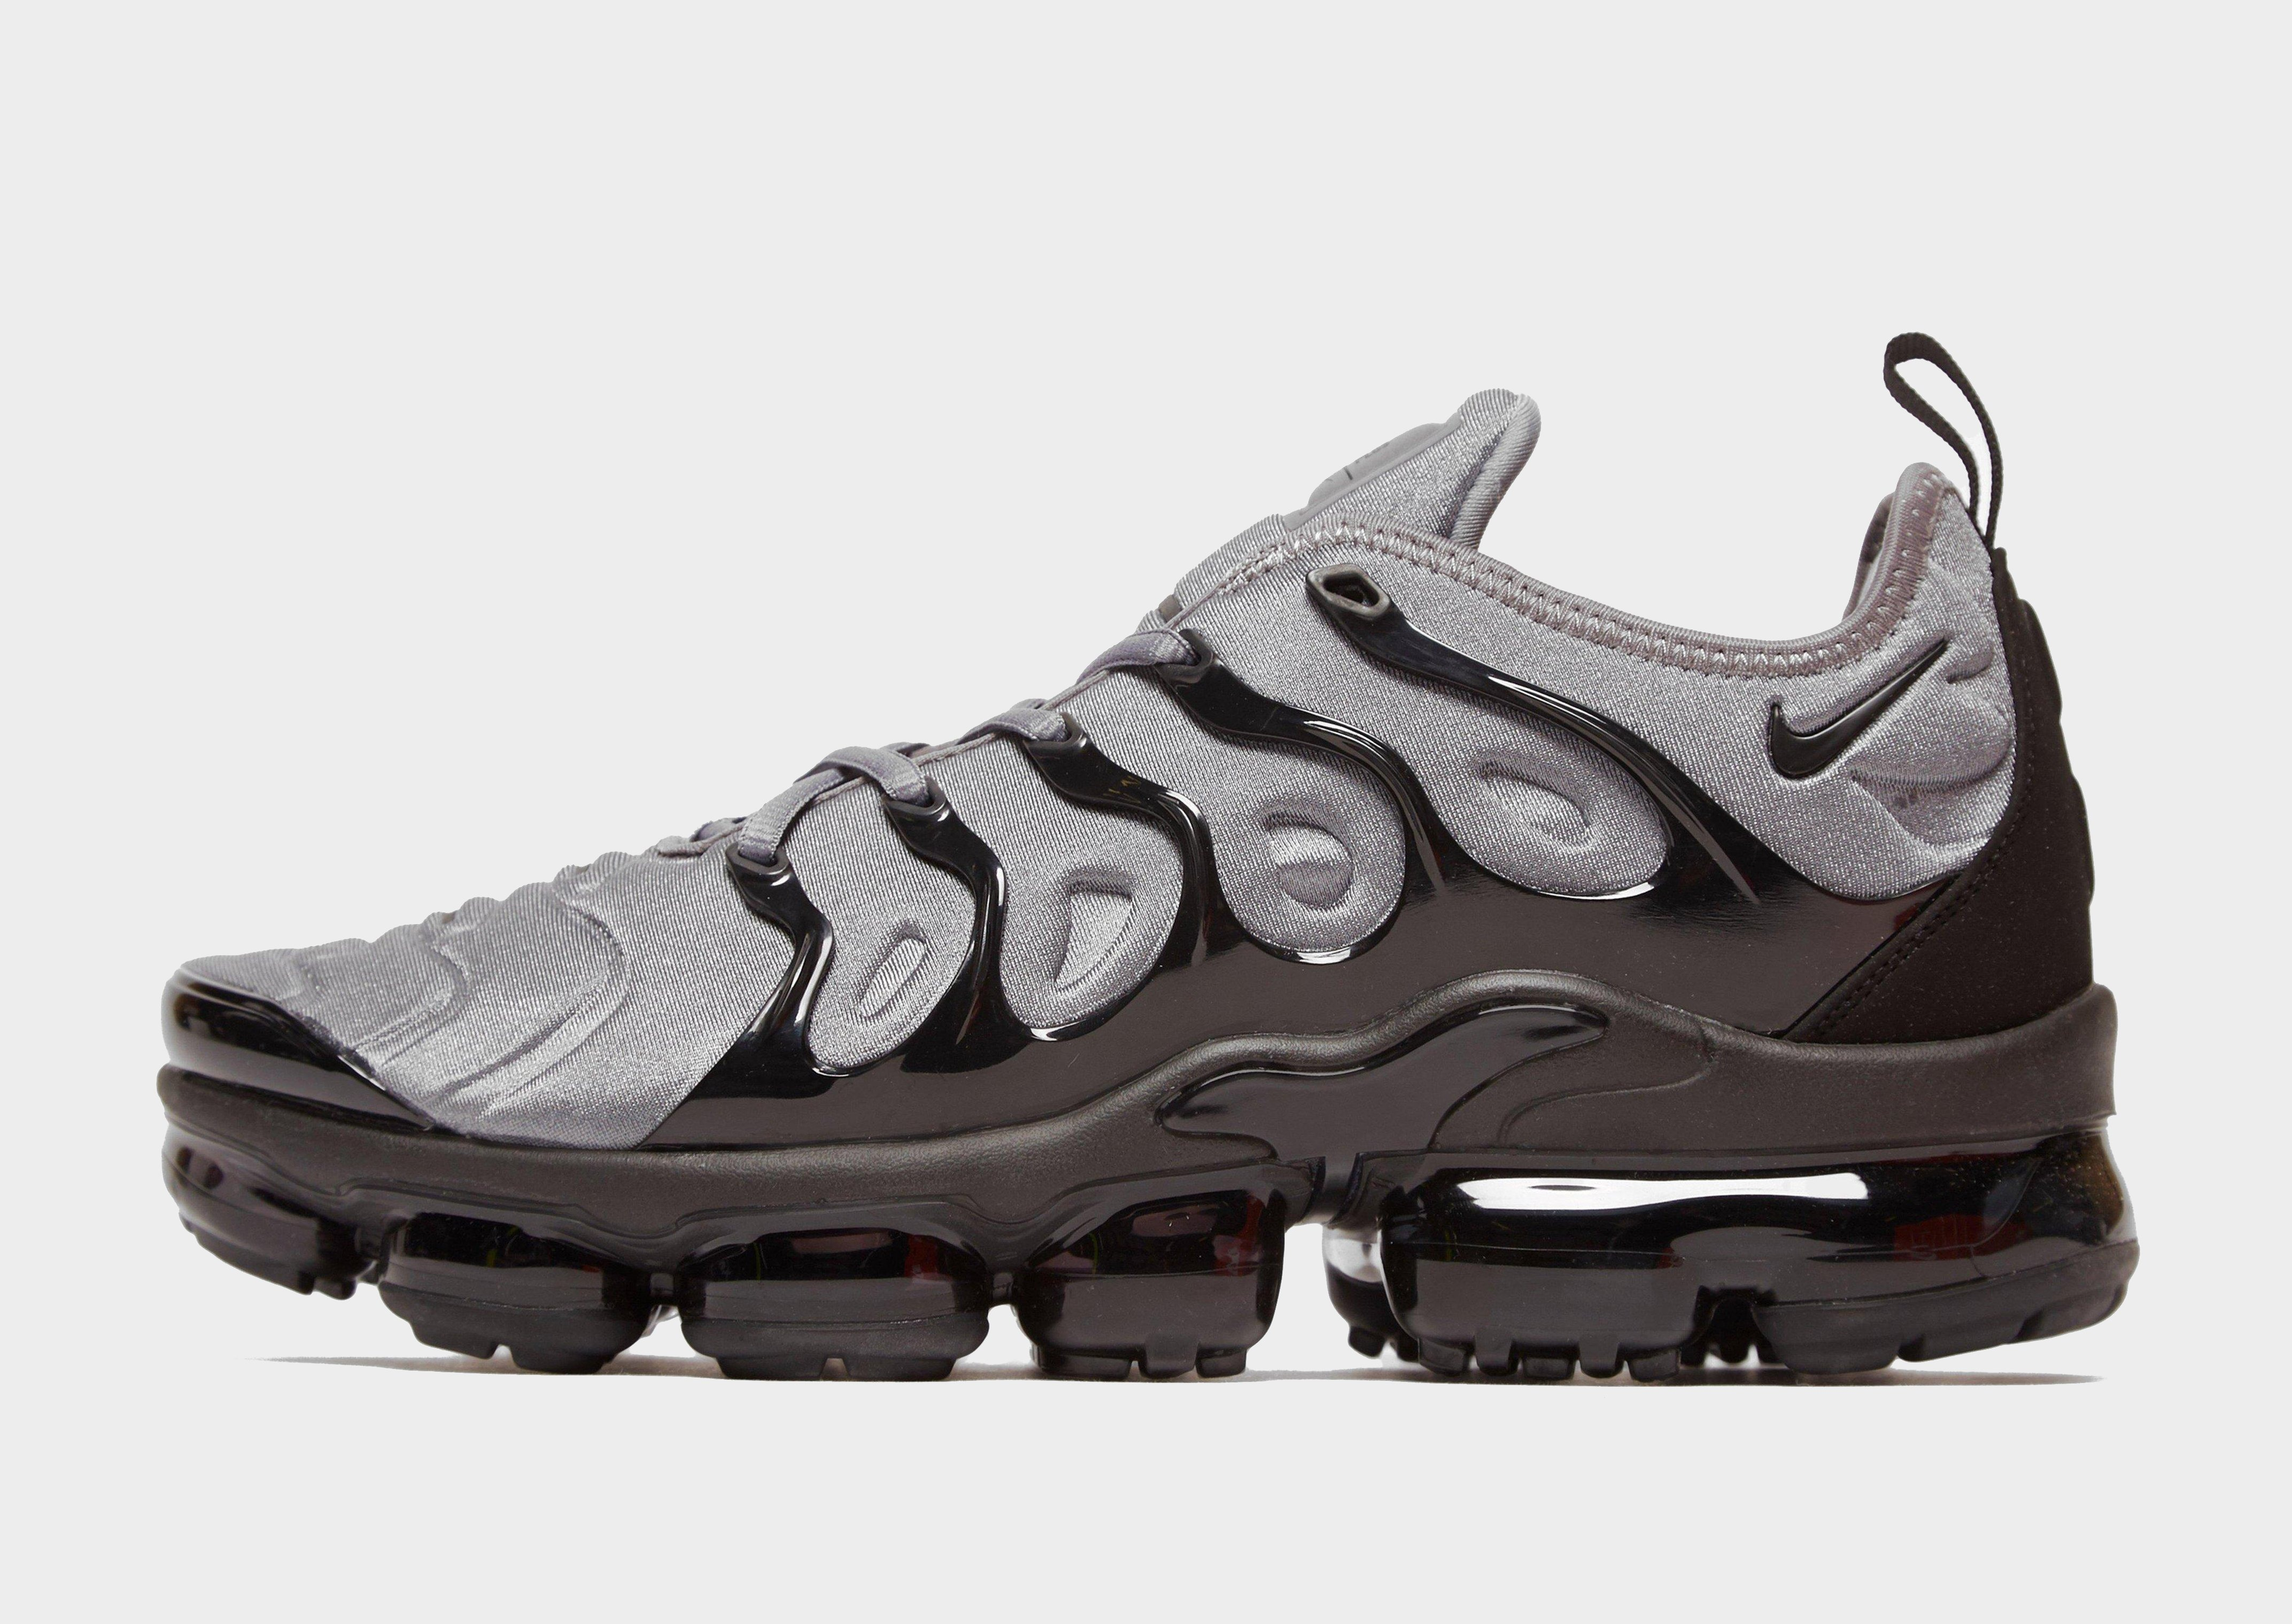 Nike Chaussure Nike Air VaporMax Plus pour Homme | JD Sports